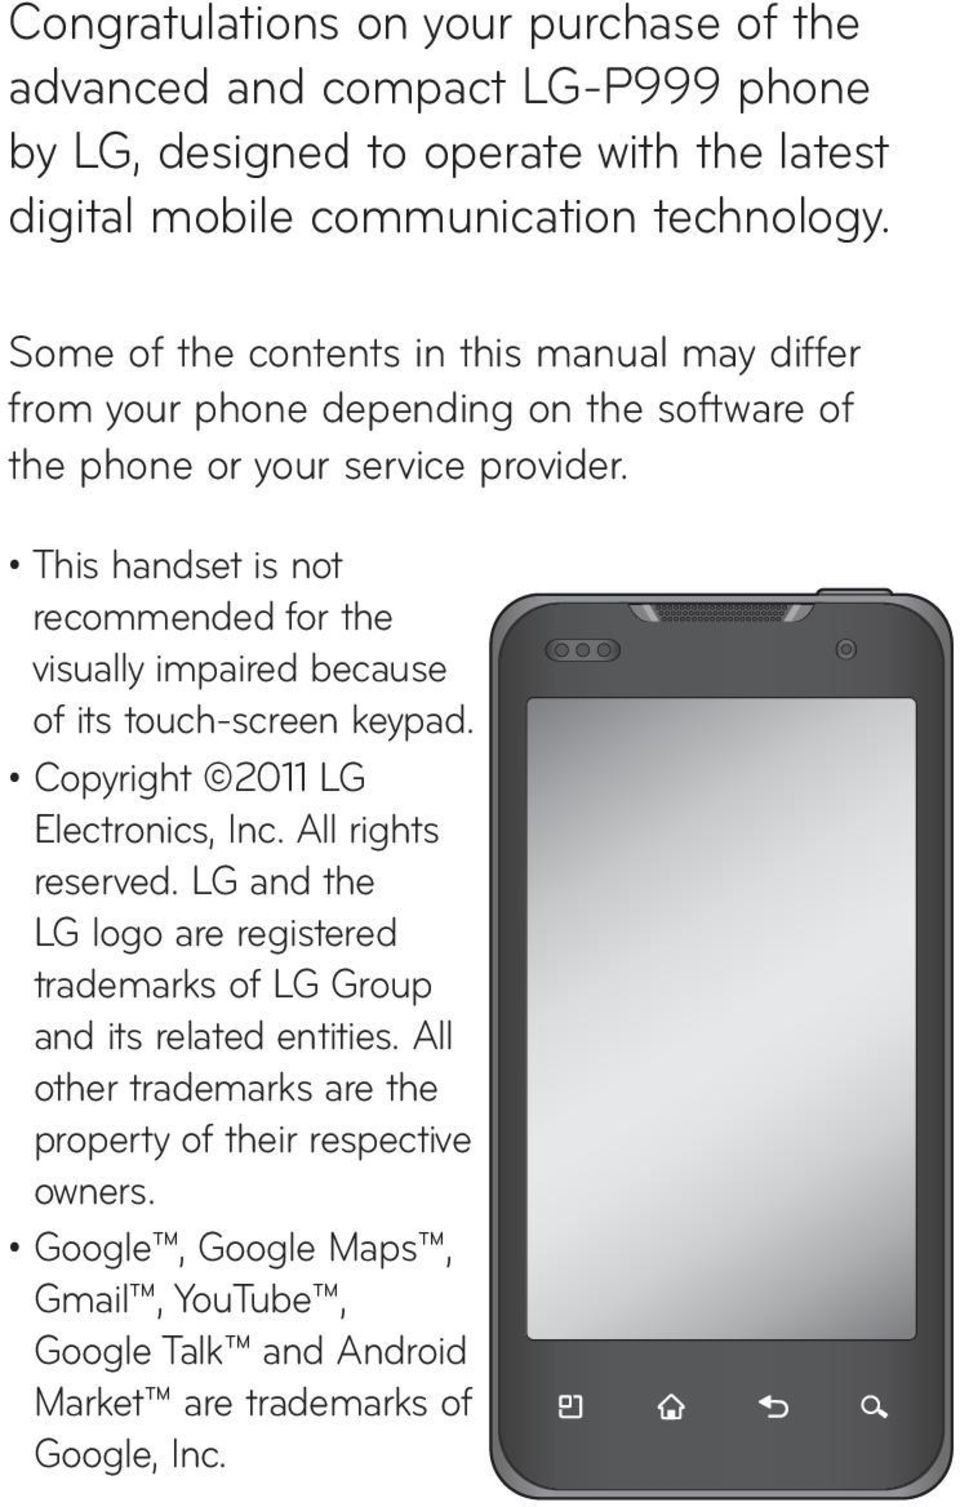 This handset is not recommended for the visually impaired because of its touch-screen keypad. Copyright 2011 LG Electronics, Inc. All rights reserved.